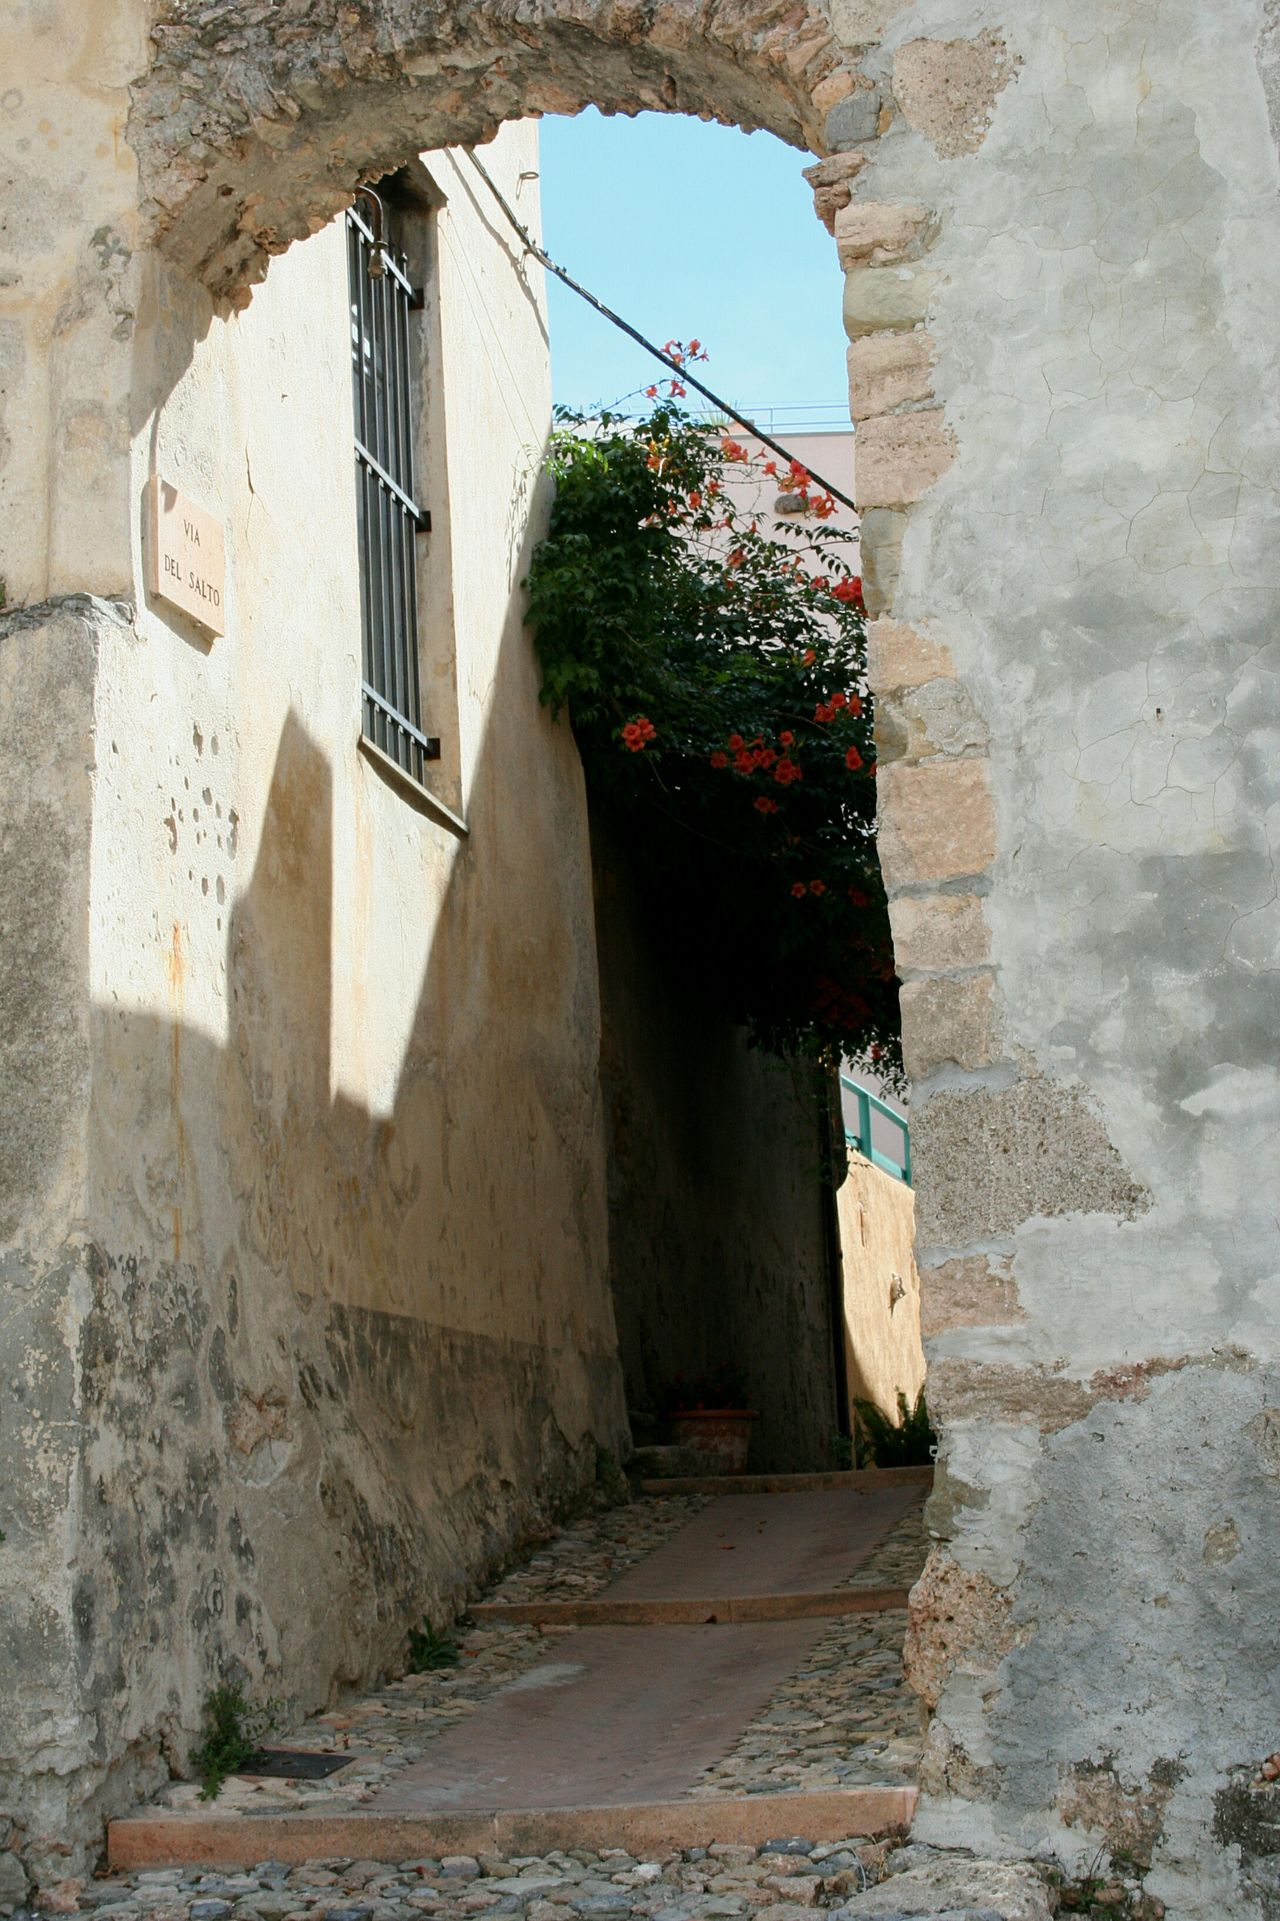 Architecture Built Structure Building Exterior Shadow Outdoors House Day No People Liguria,Italy Blooming In The Street Orange Blooms Vicolo Del Paese Narrow Street Old Buildings Old Street